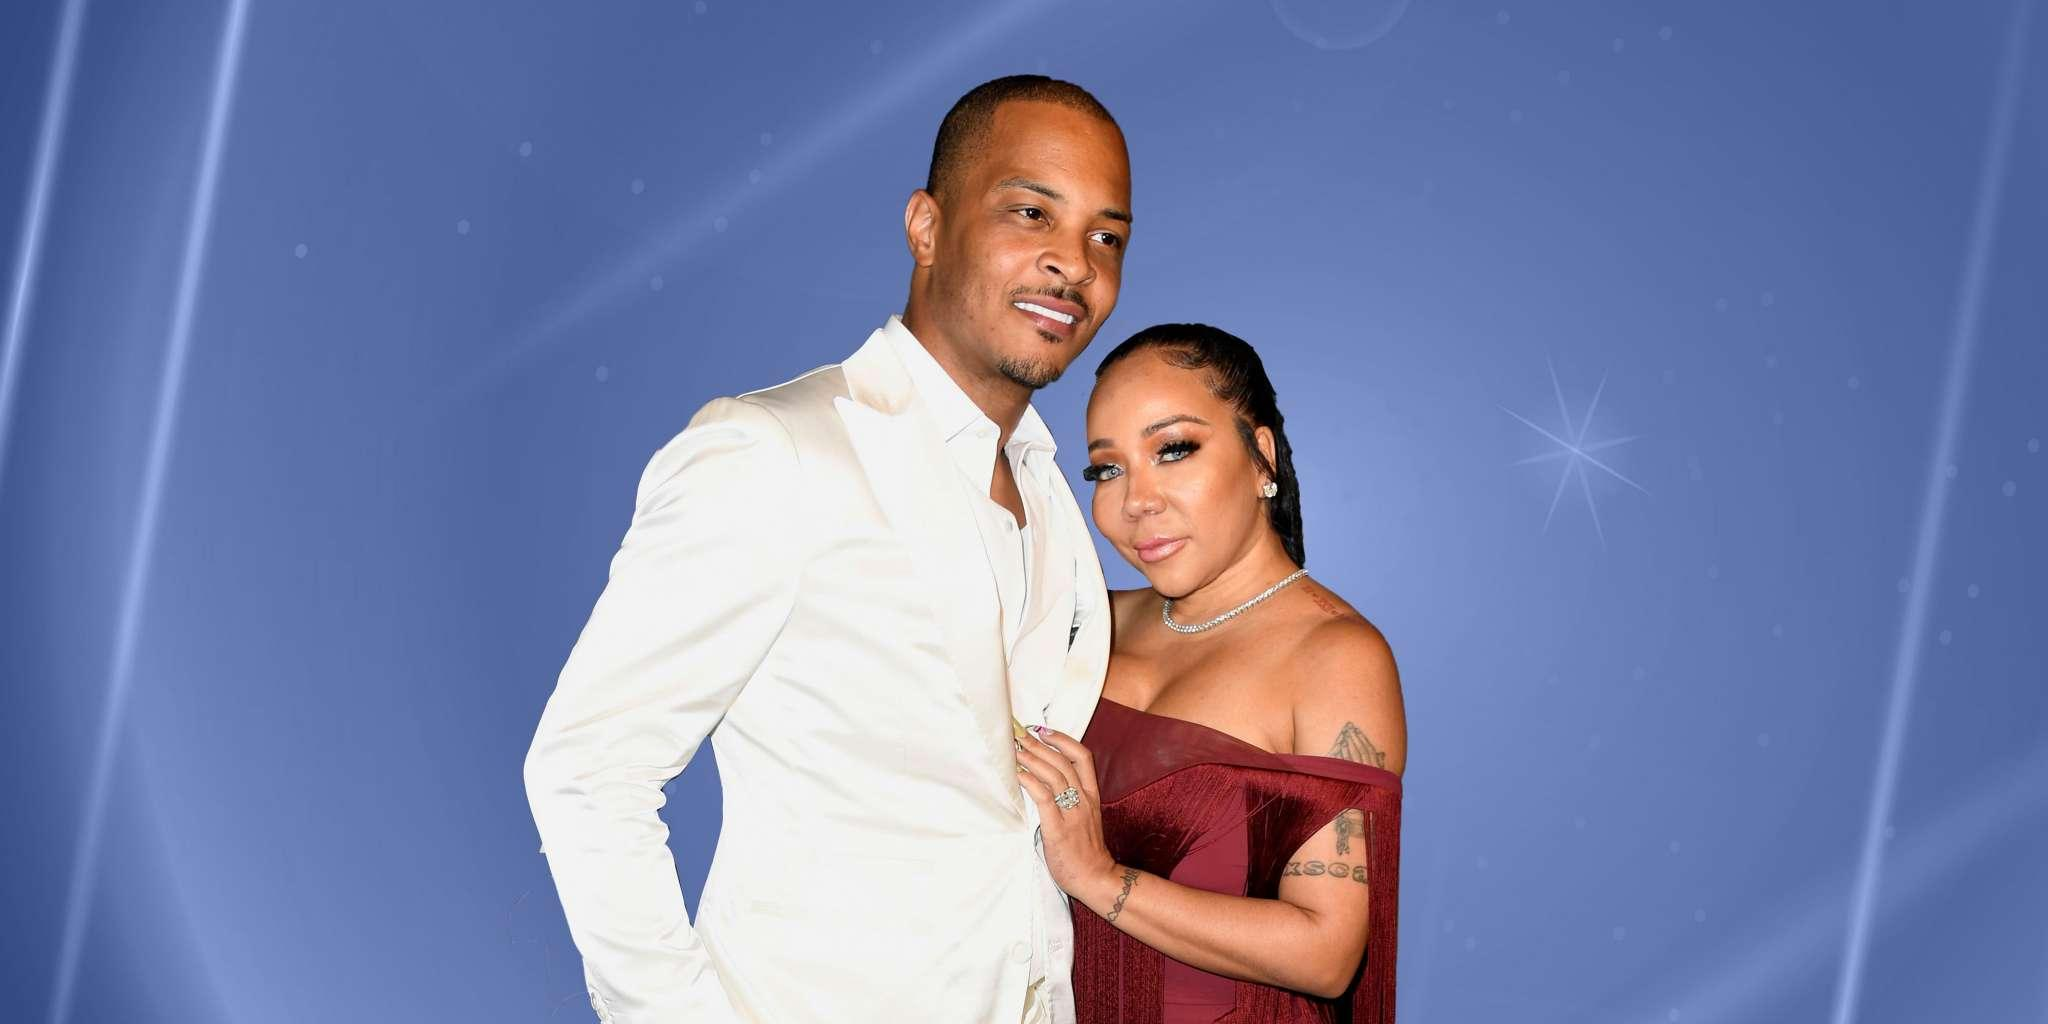 T.I.'s Message For His Daughter, Deyjah's Birthday Impressed Fans - See His Post Here